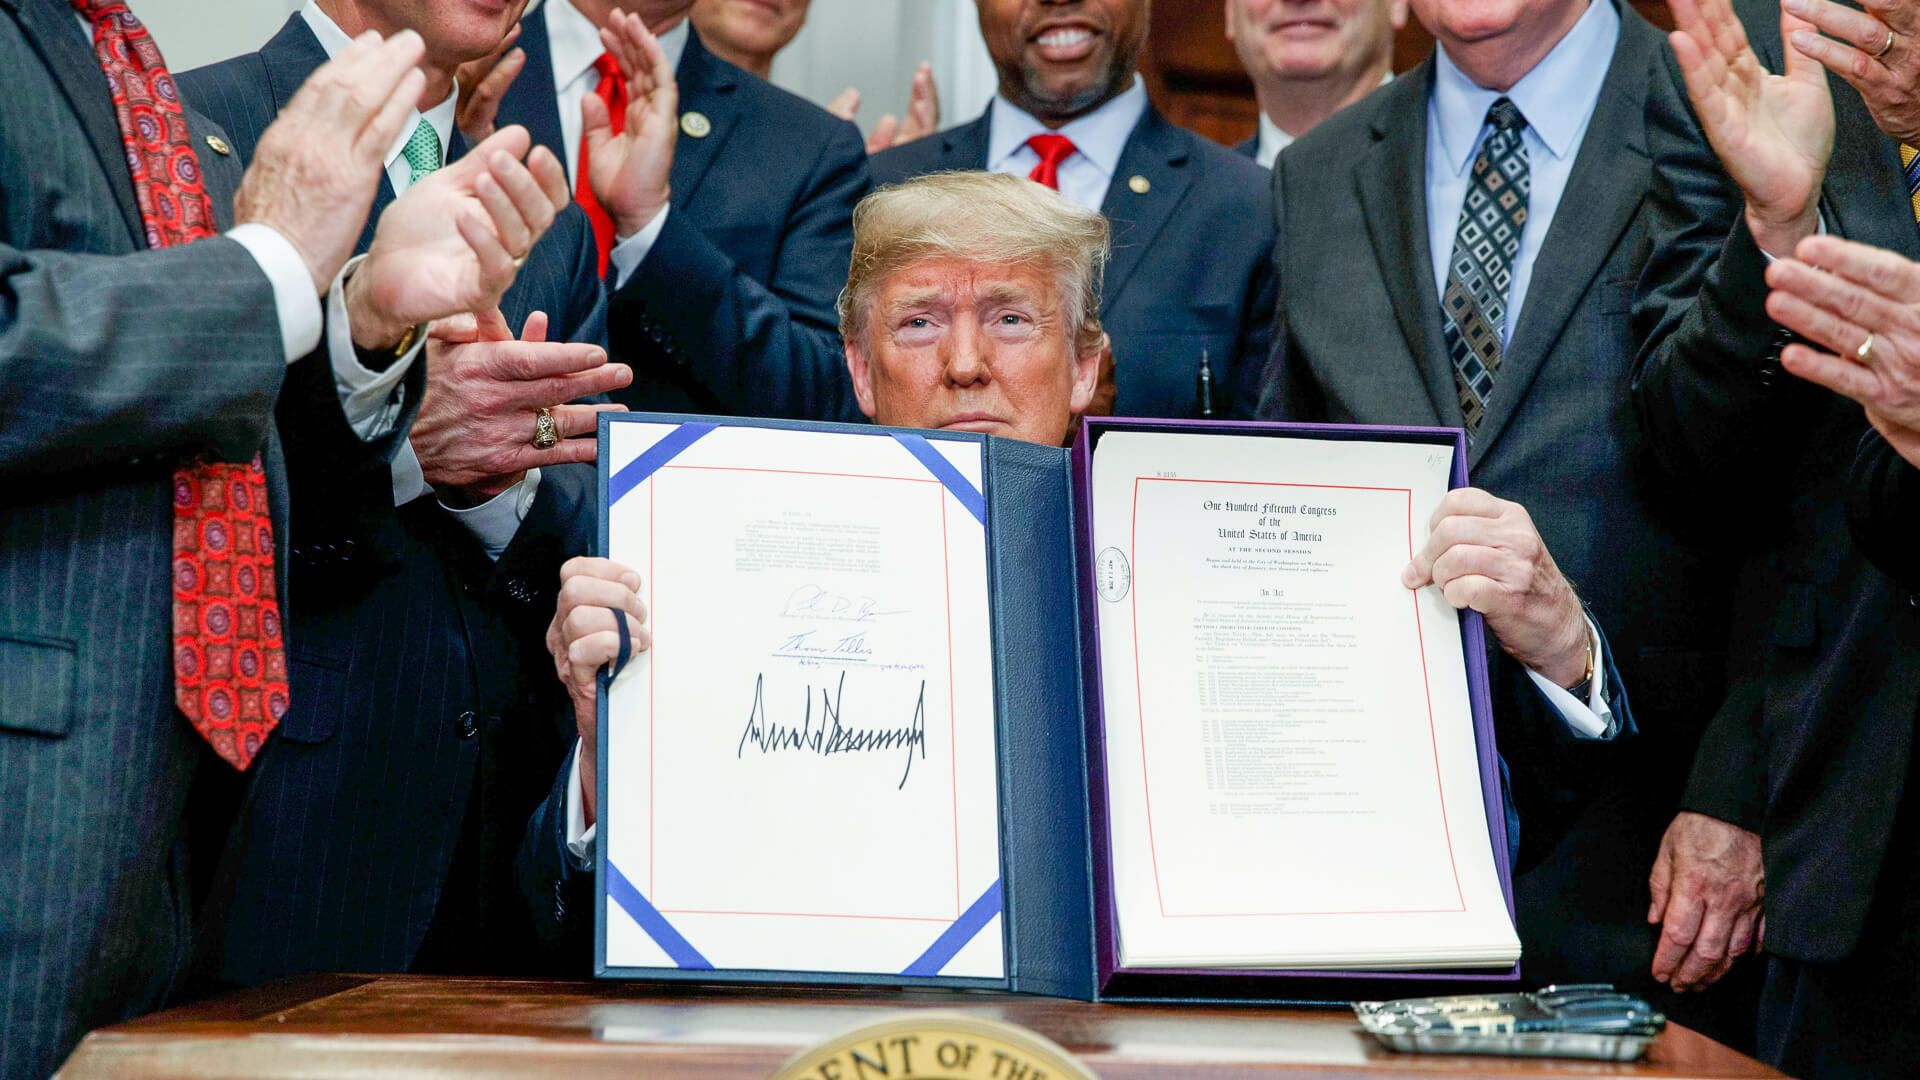 President Donald Trump signs the Economic Growth Regulation Relief and Consumer Protection Act